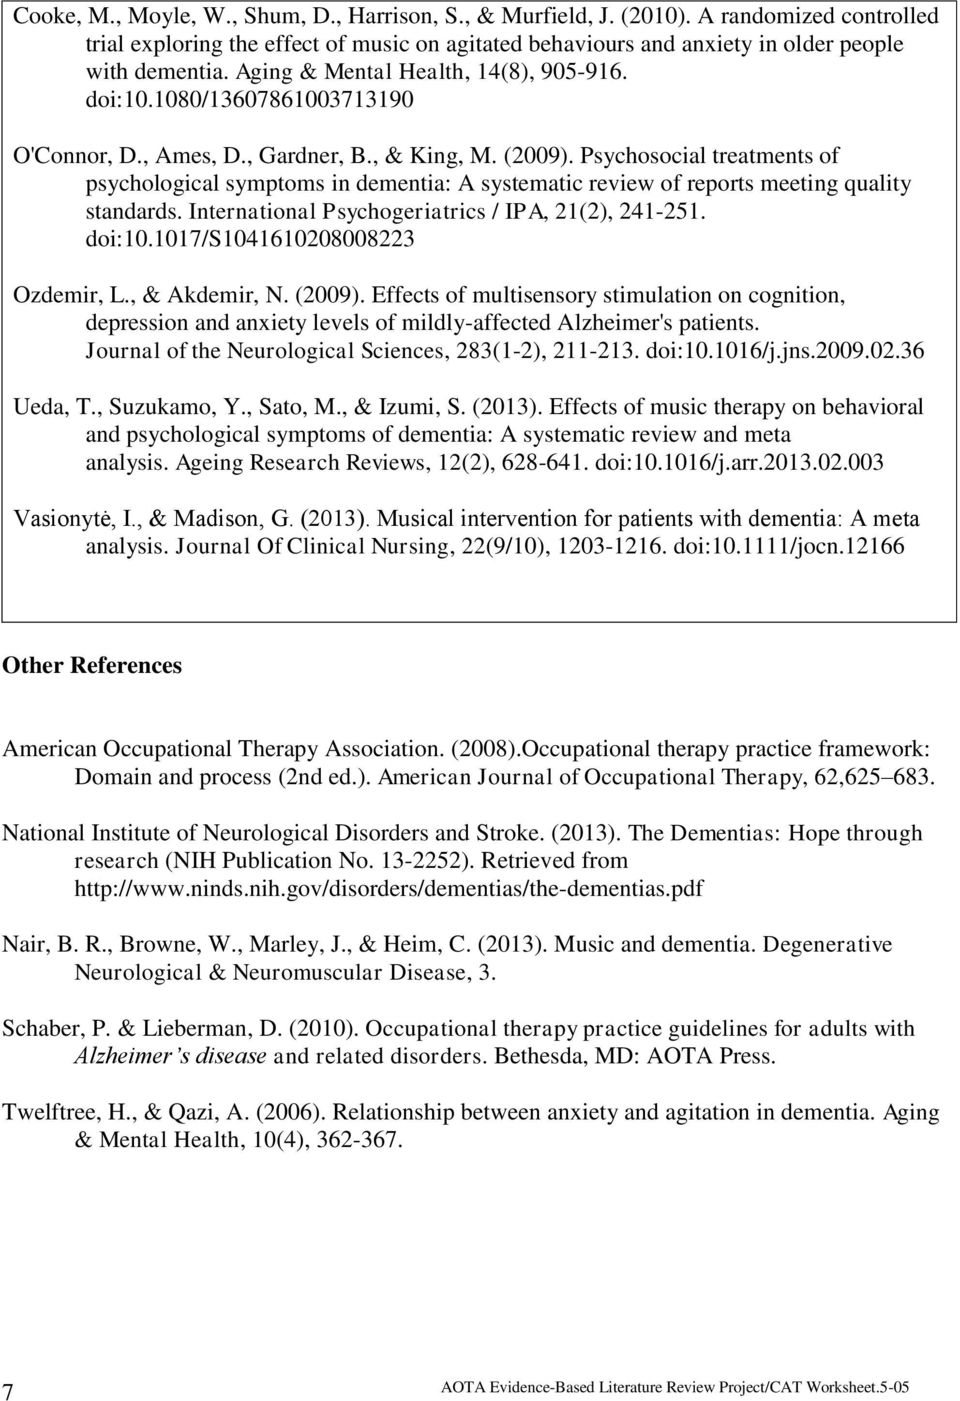 Psychosocial treatments of psychological symptoms in dementia: A systematic review of reports meeting quality standards. International Psychogeriatrics / IPA, 21(2), 241-251. doi:10.